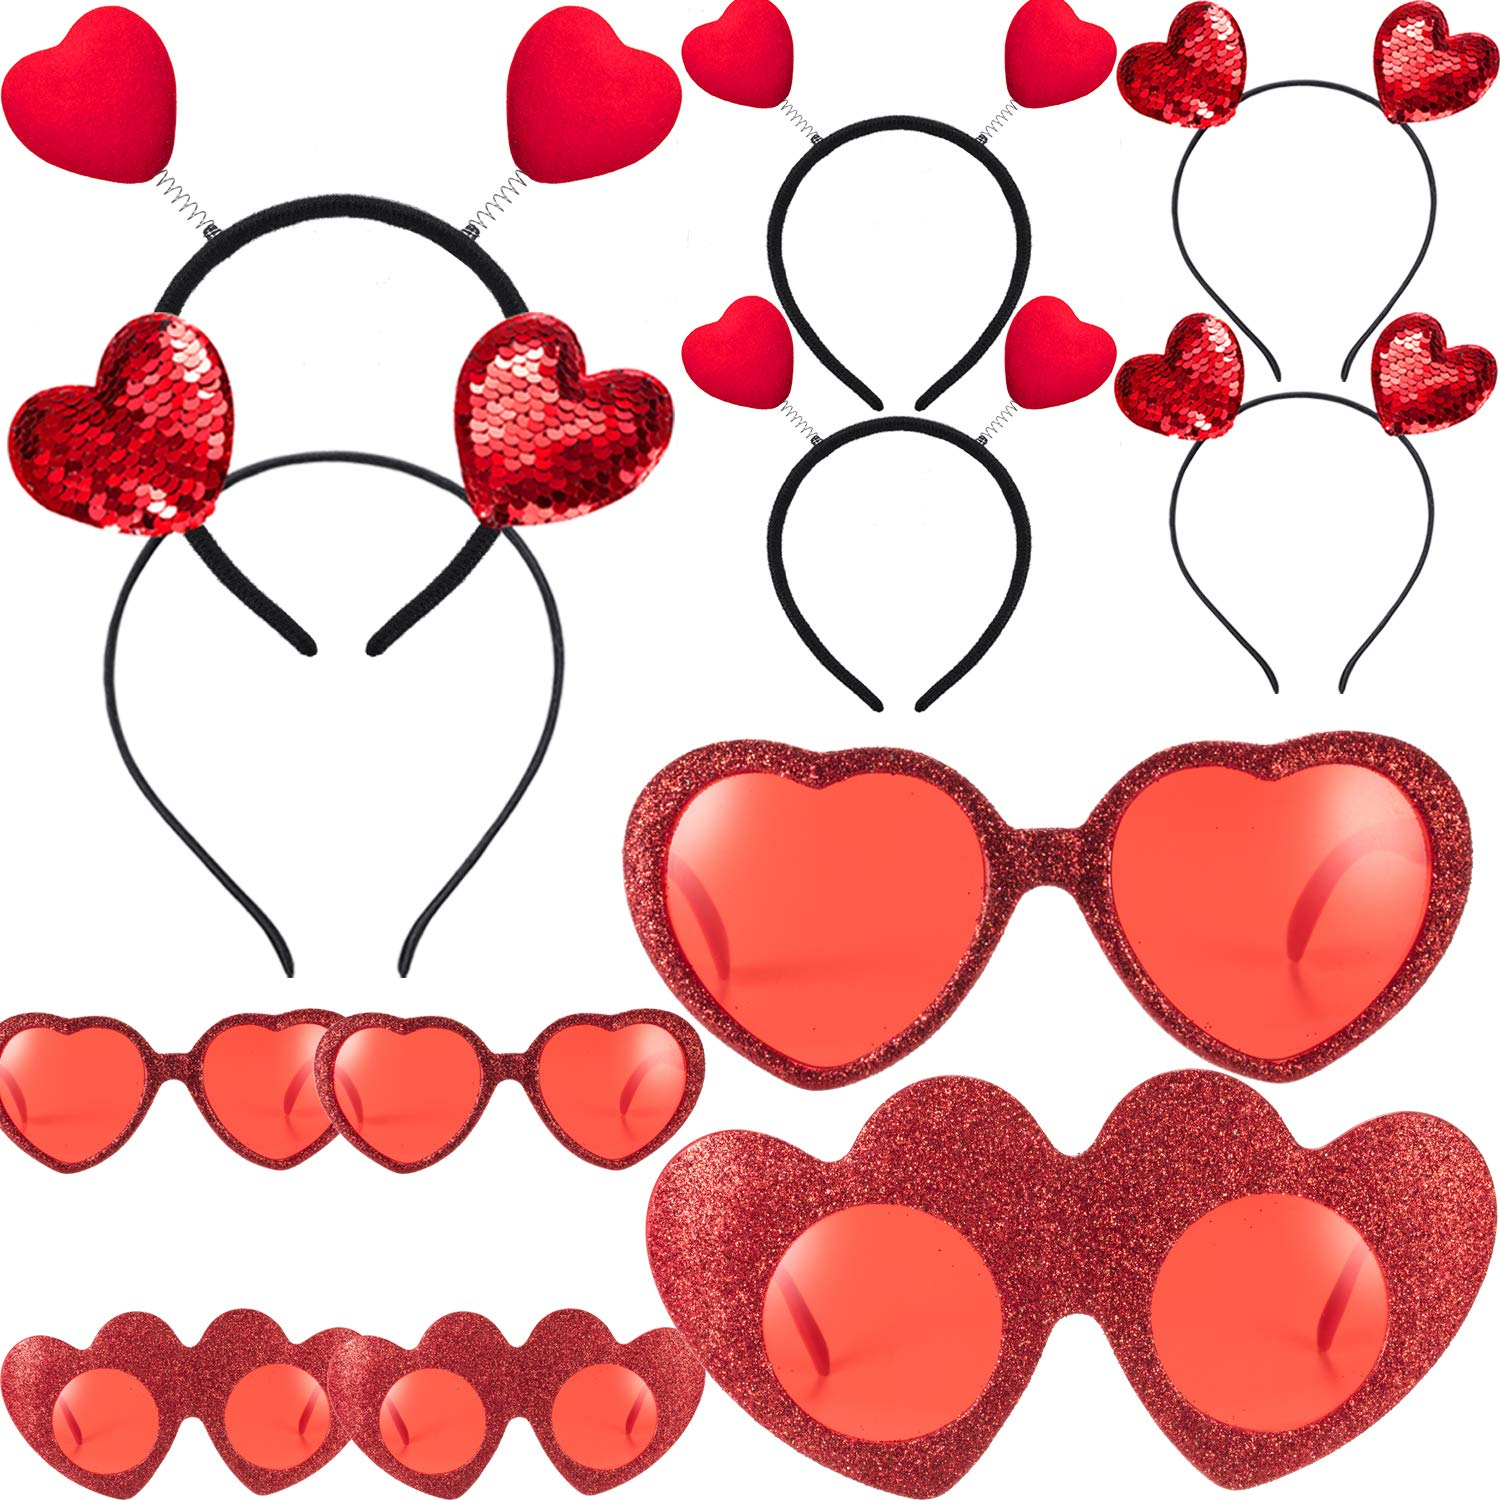 Skylety 12 Pieces Valentines Head Boppers and Red Heart Glasses for Girls Women, Heart Headbands for Valentine Party Props Accessory Holiday by Skylety